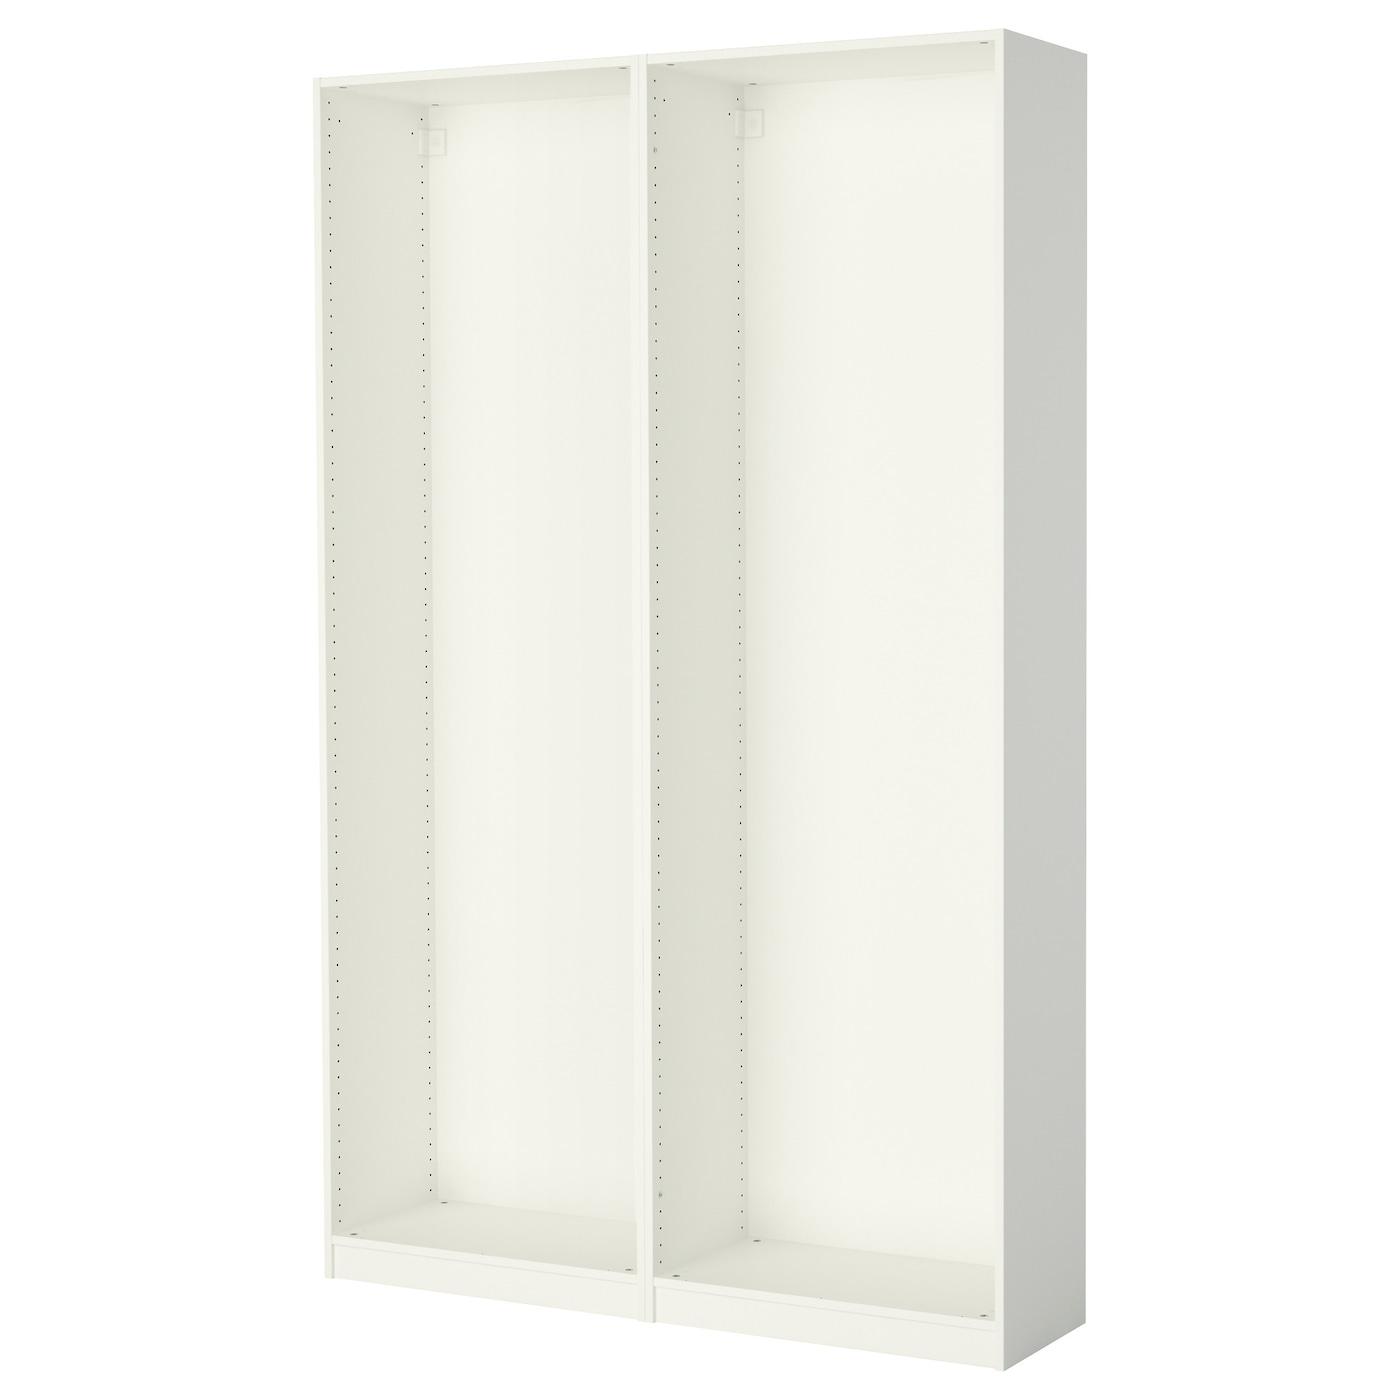 pax 2 wardrobe frames white 150x35x236 cm ikea. Black Bedroom Furniture Sets. Home Design Ideas